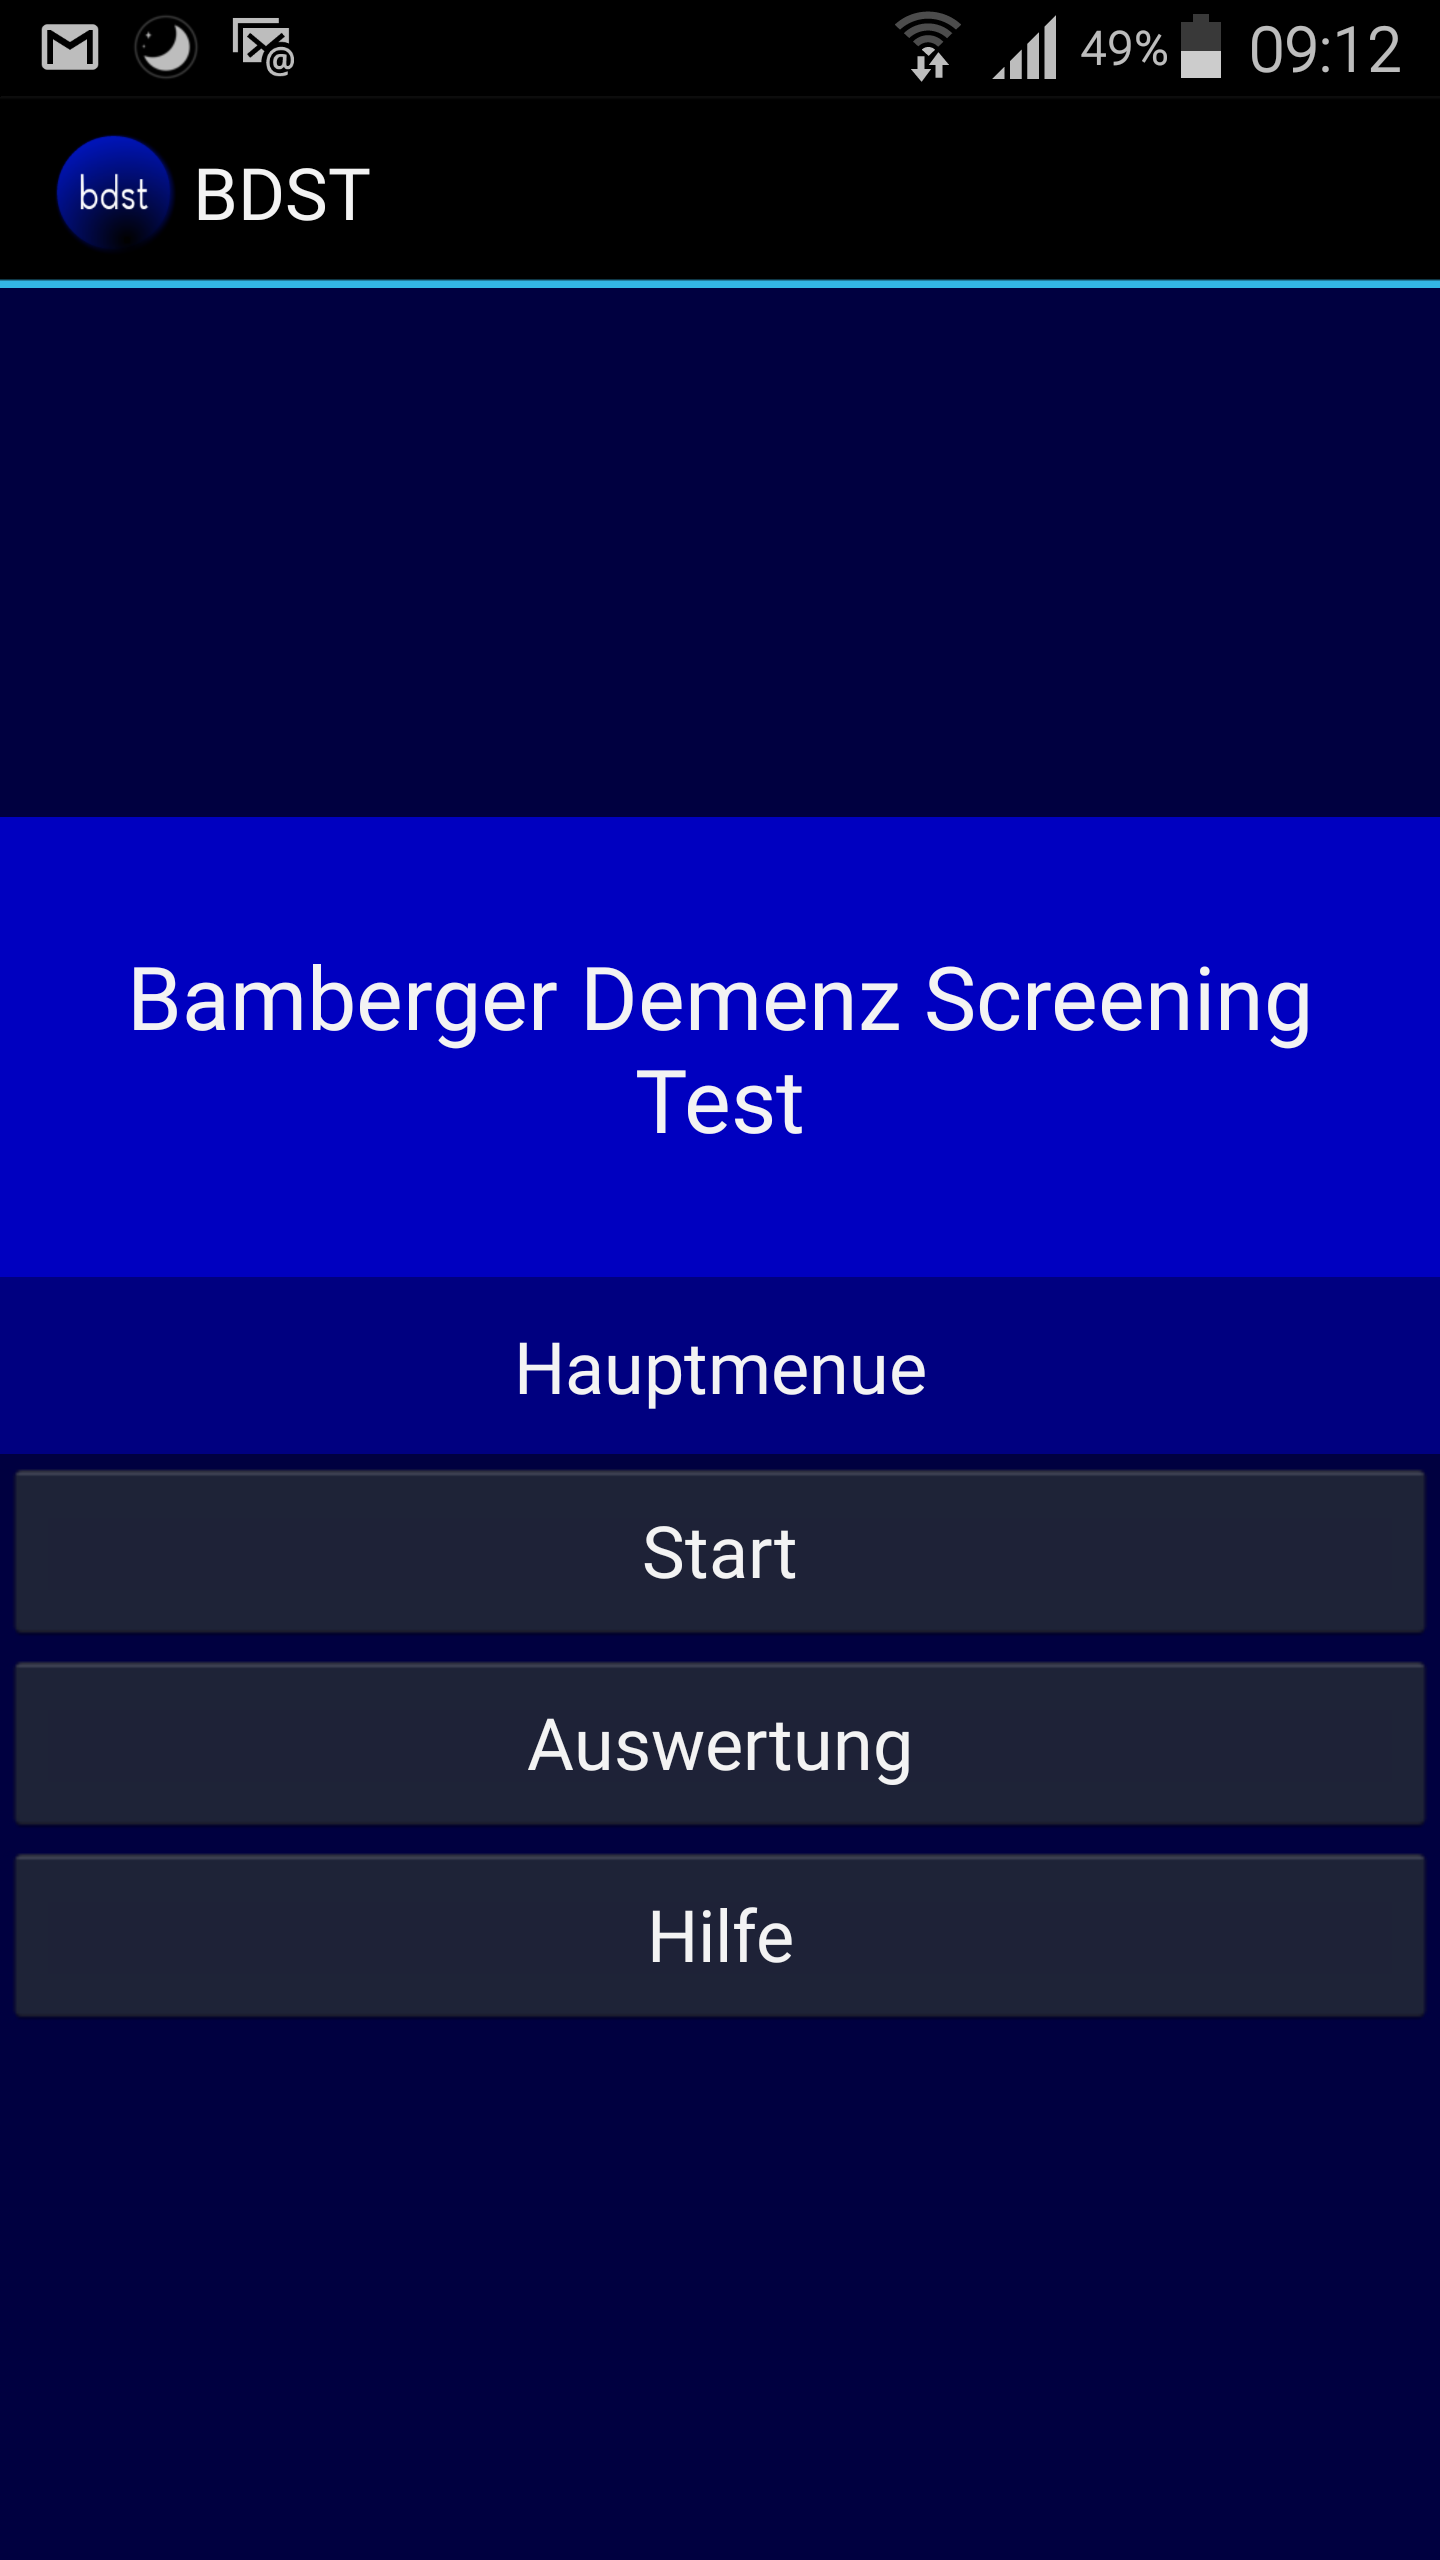 Bamberger Demenz Screening Test